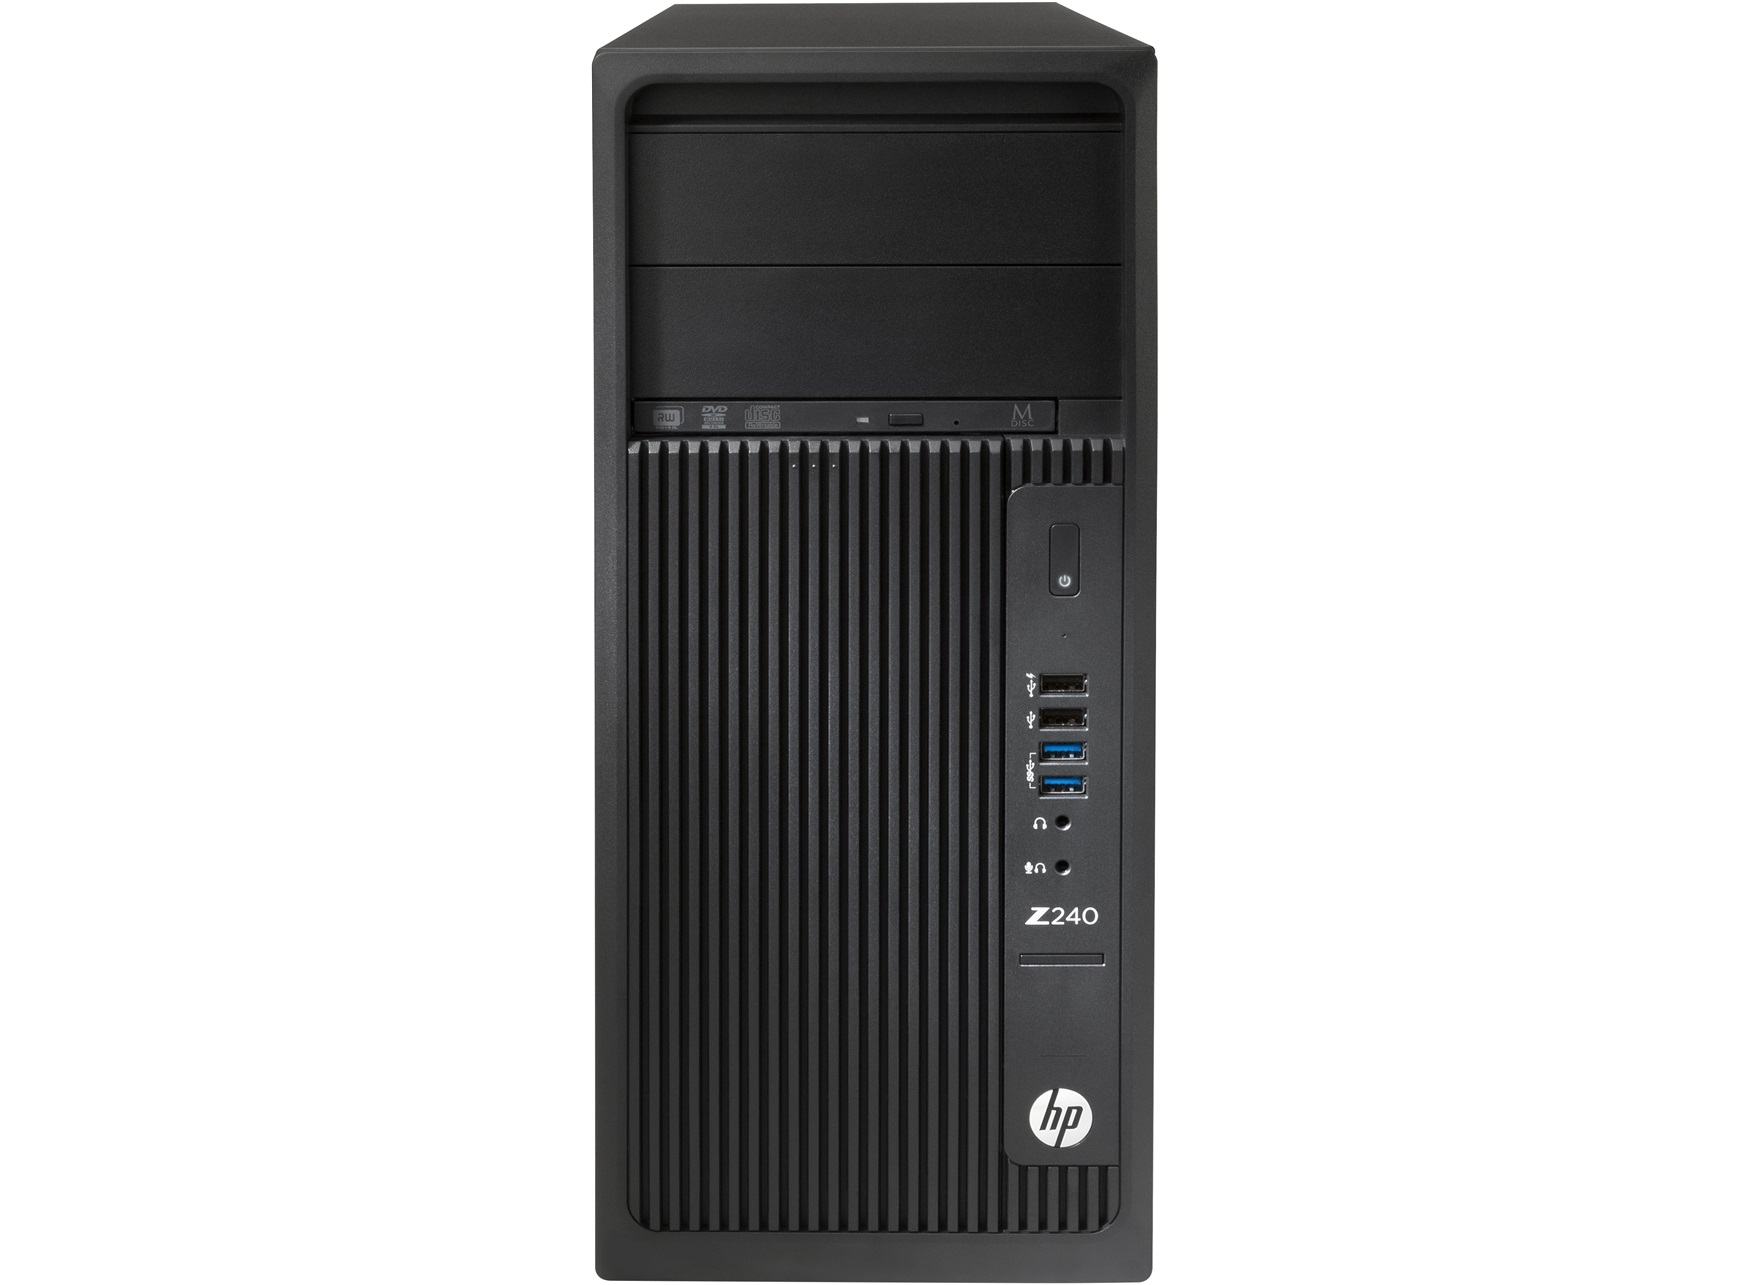 HP Z240 TWR Intel i7-7700 3.4GHz/ 8GB DDR4-2133 nECC (2x4GB)/1TB 7200/Intel HD GFX 630/Win 10 Pro